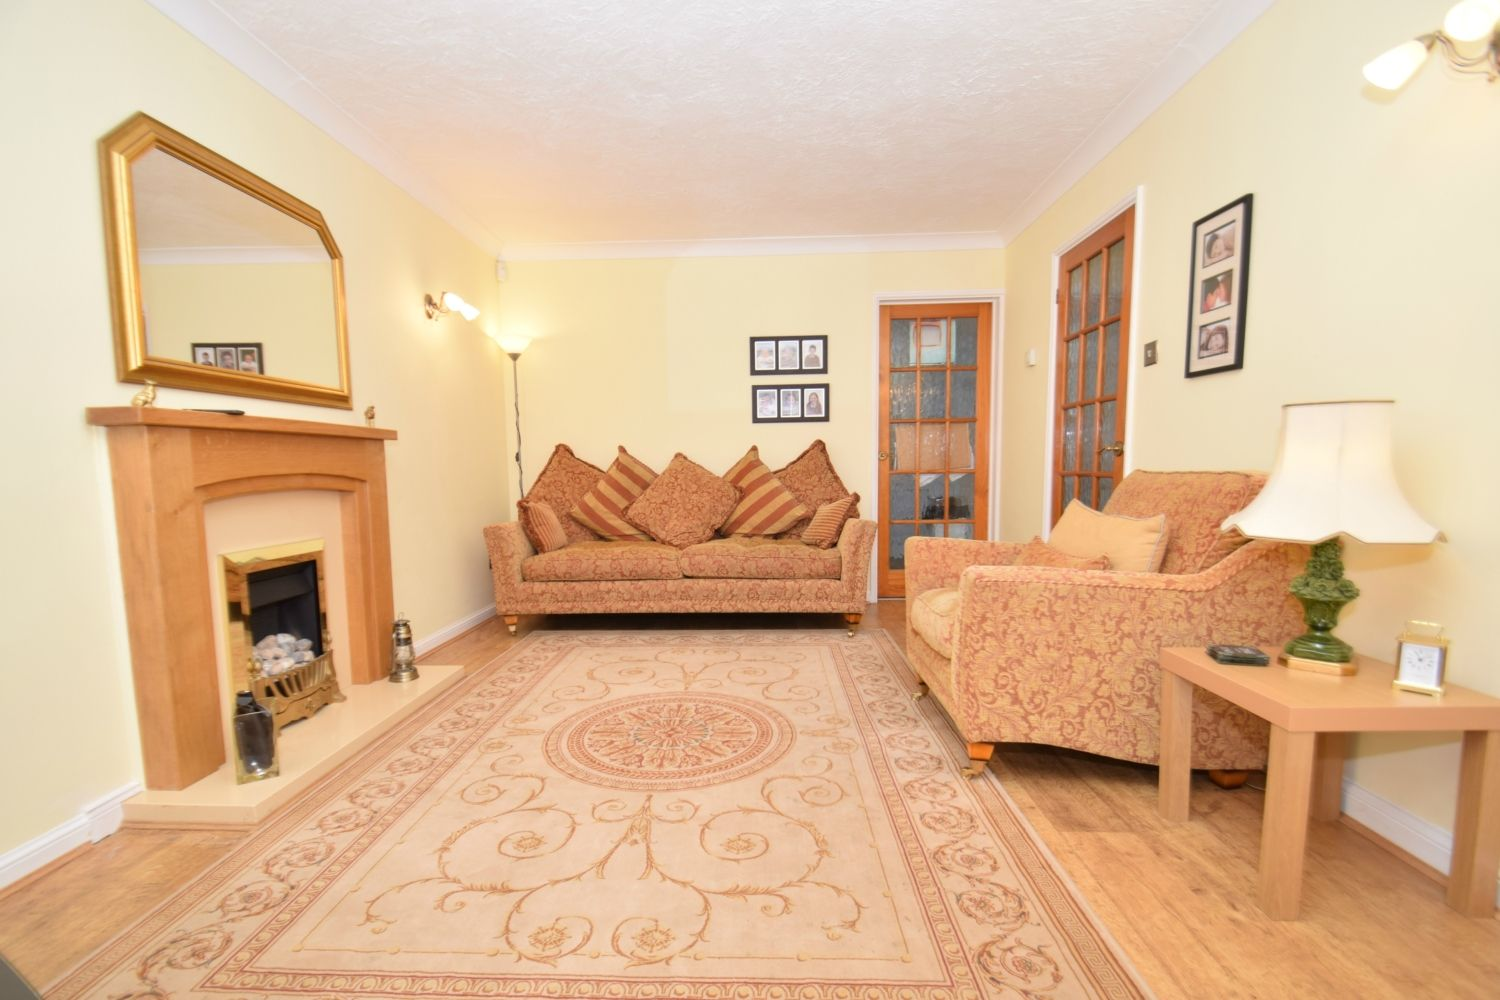 3 bed detached for sale in Foxes Close, Blackwell, B60  - Property Image 5